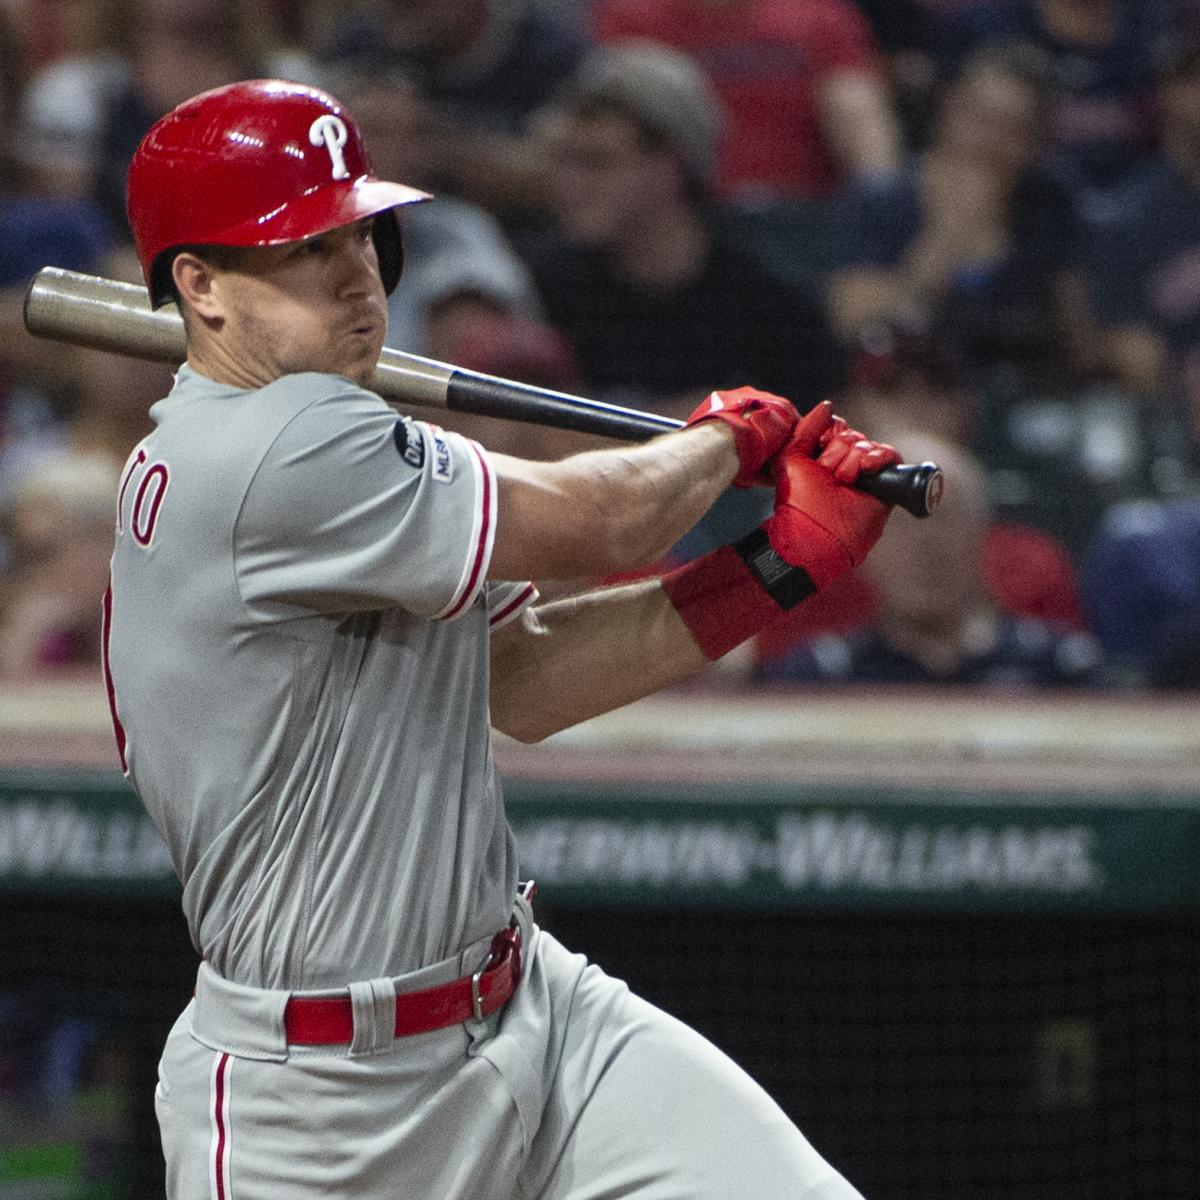 Phillies Rumors: J.T. Realmuto Expected to Seek Record Contract for Catcher